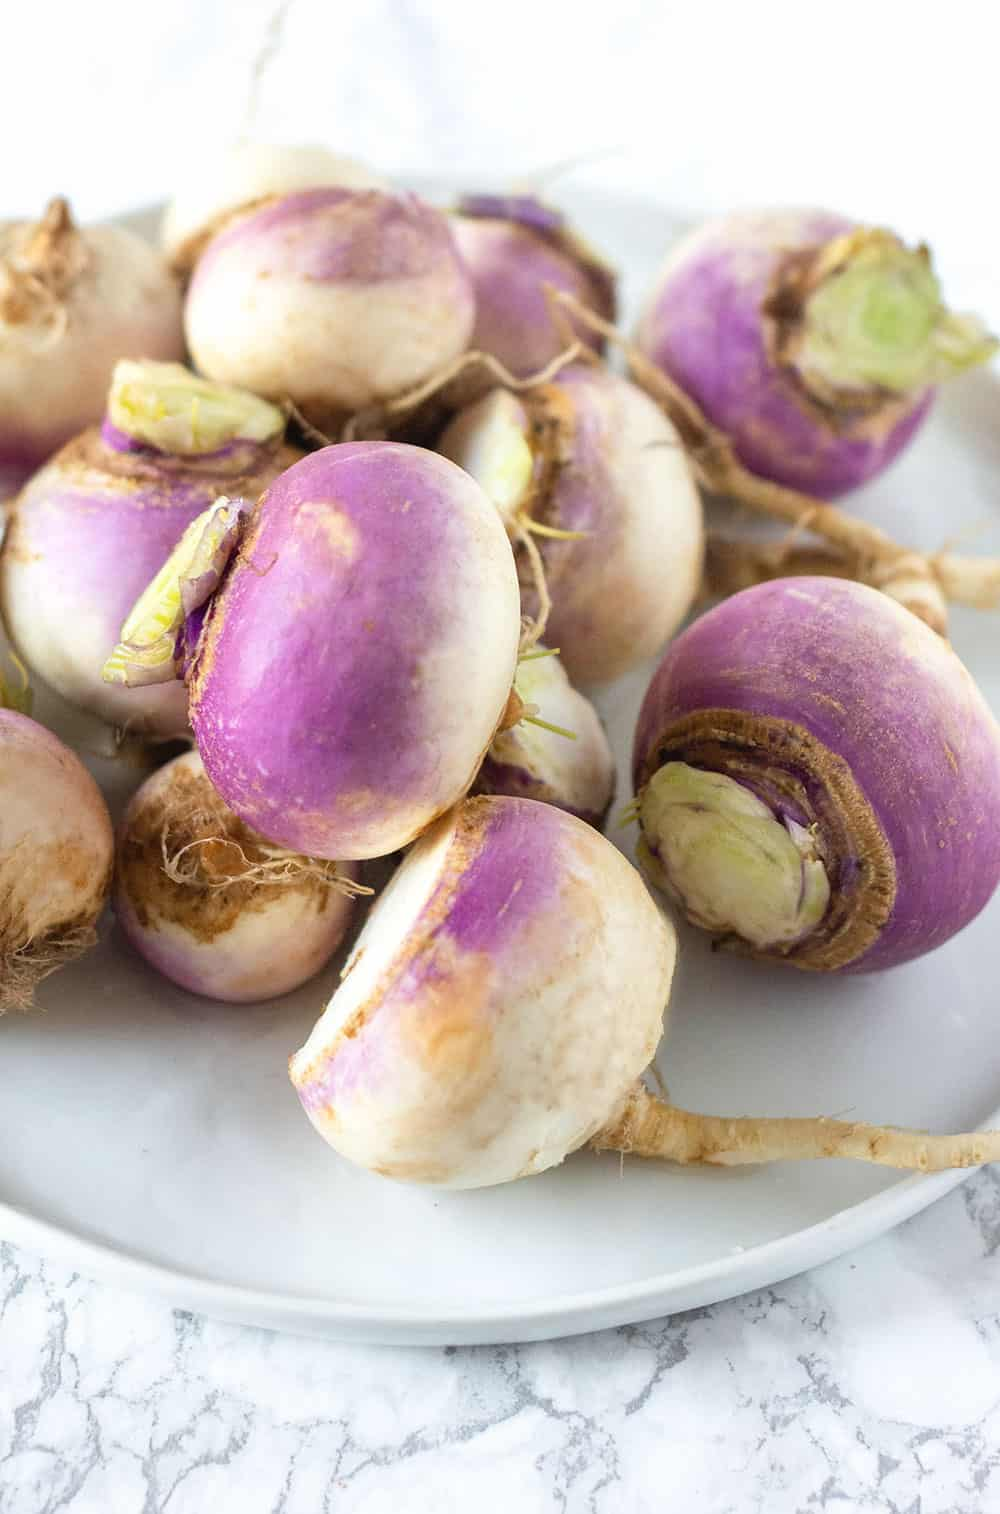 Turnips For Roasted Turnips And Garlic